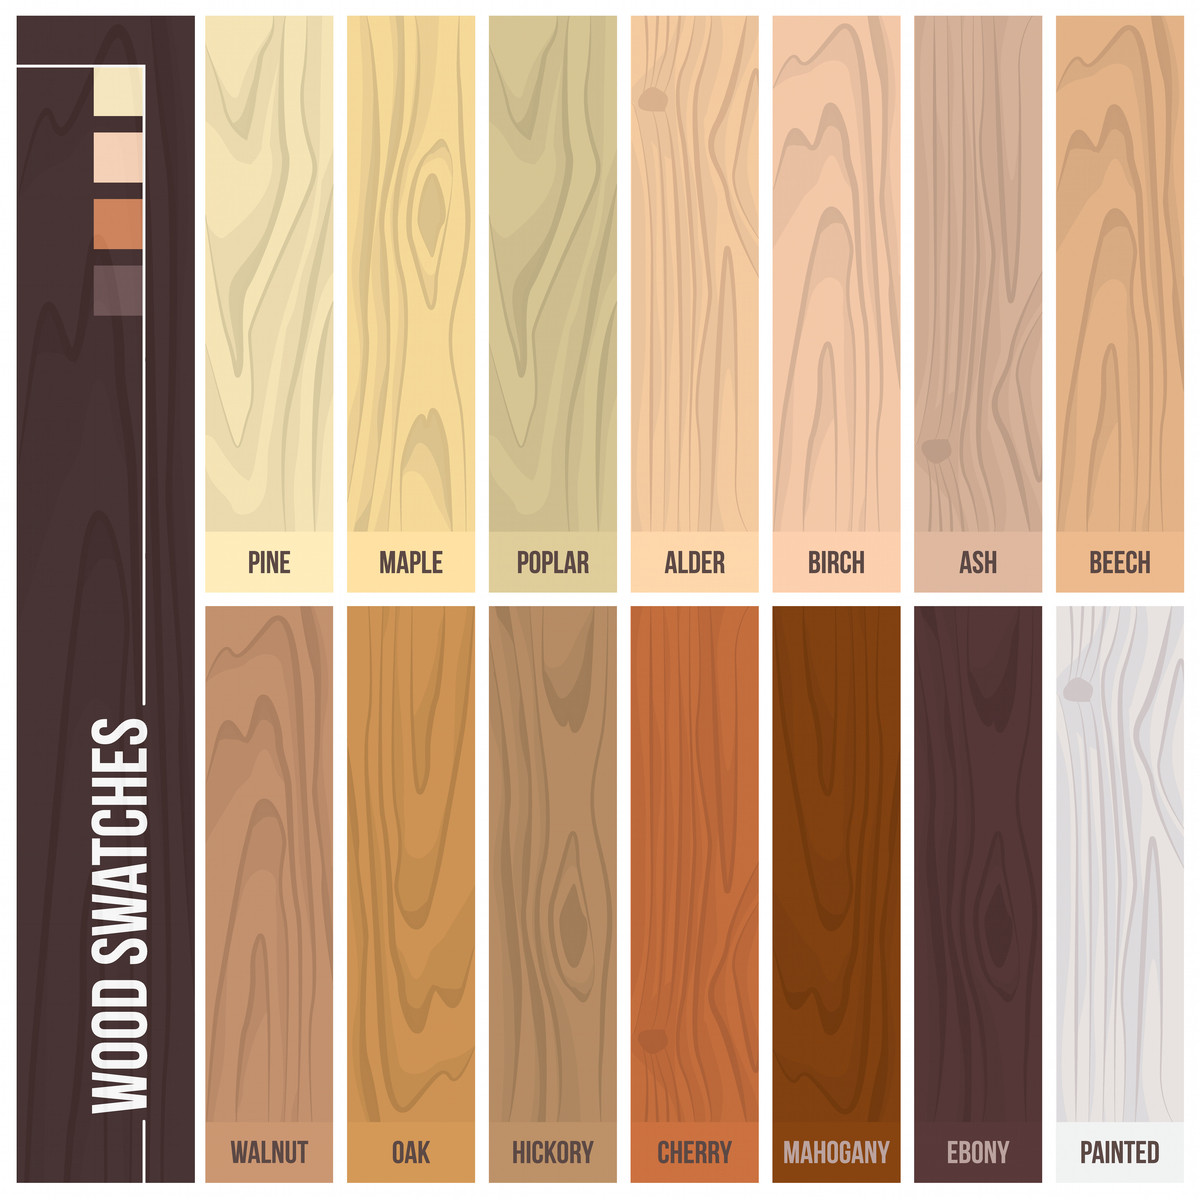 acacia hardwood flooring prices of 12 types of hardwood flooring species styles edging dimensions inside types of hardwood flooring illustrated guide